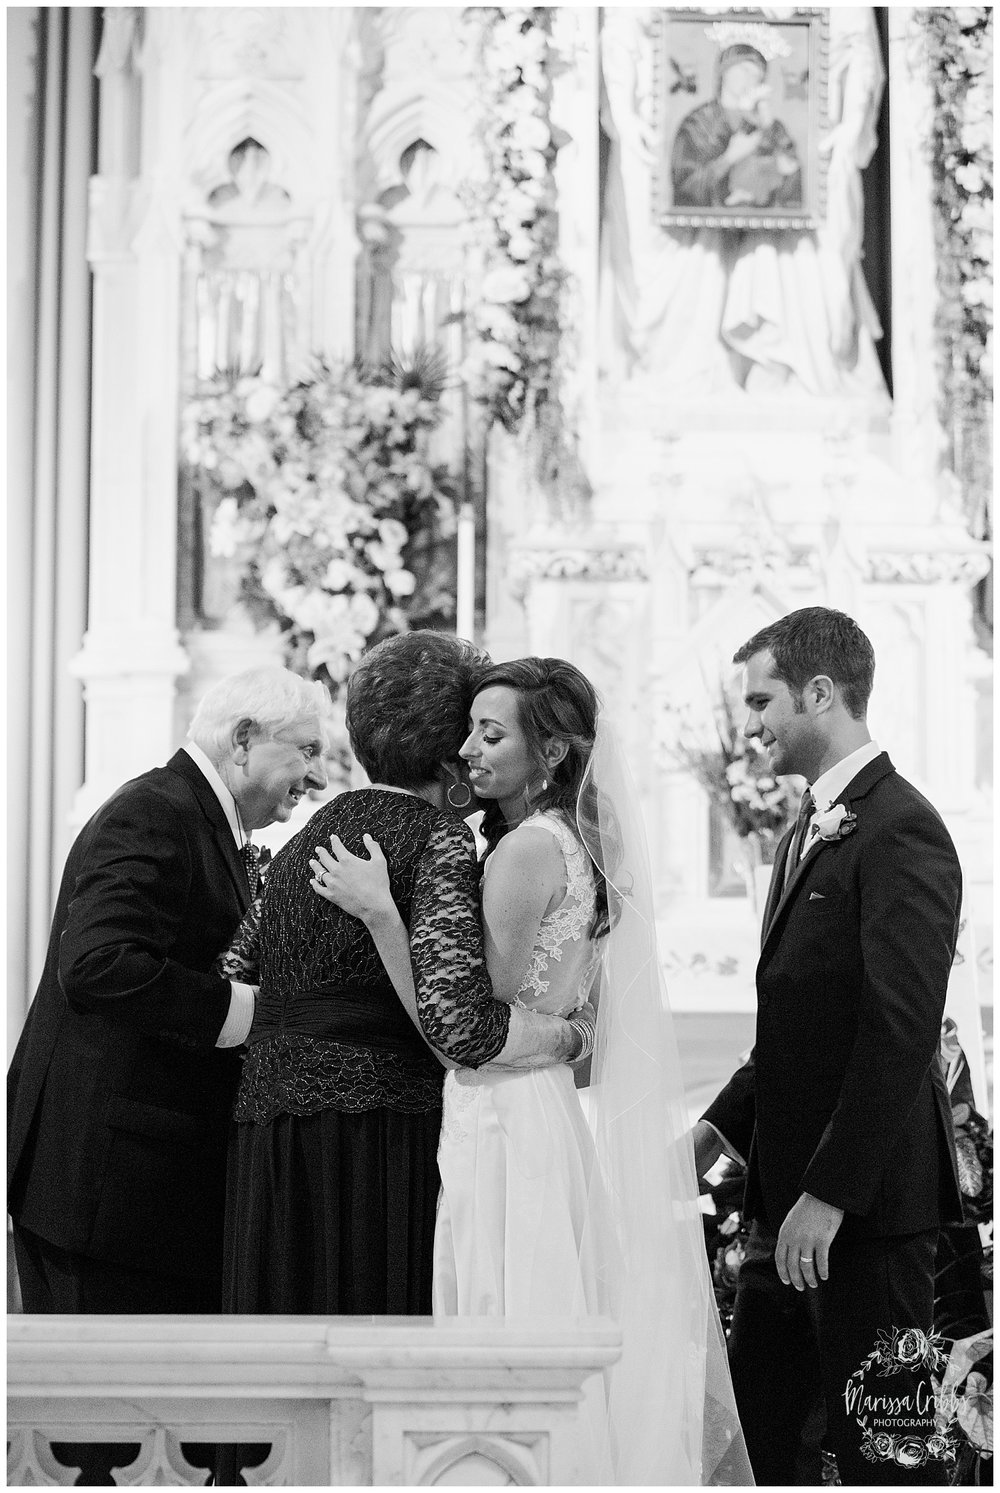 BRENDAN & KELSEY | THE MADRID THEATRE WEDDING | OUR LADY OF PERPETUAL HELP WEDDING | KC WEDDING PHOTOGRAPHERS | MARISSA CRIBBS PHOTOGRAPHY_2059.jpg